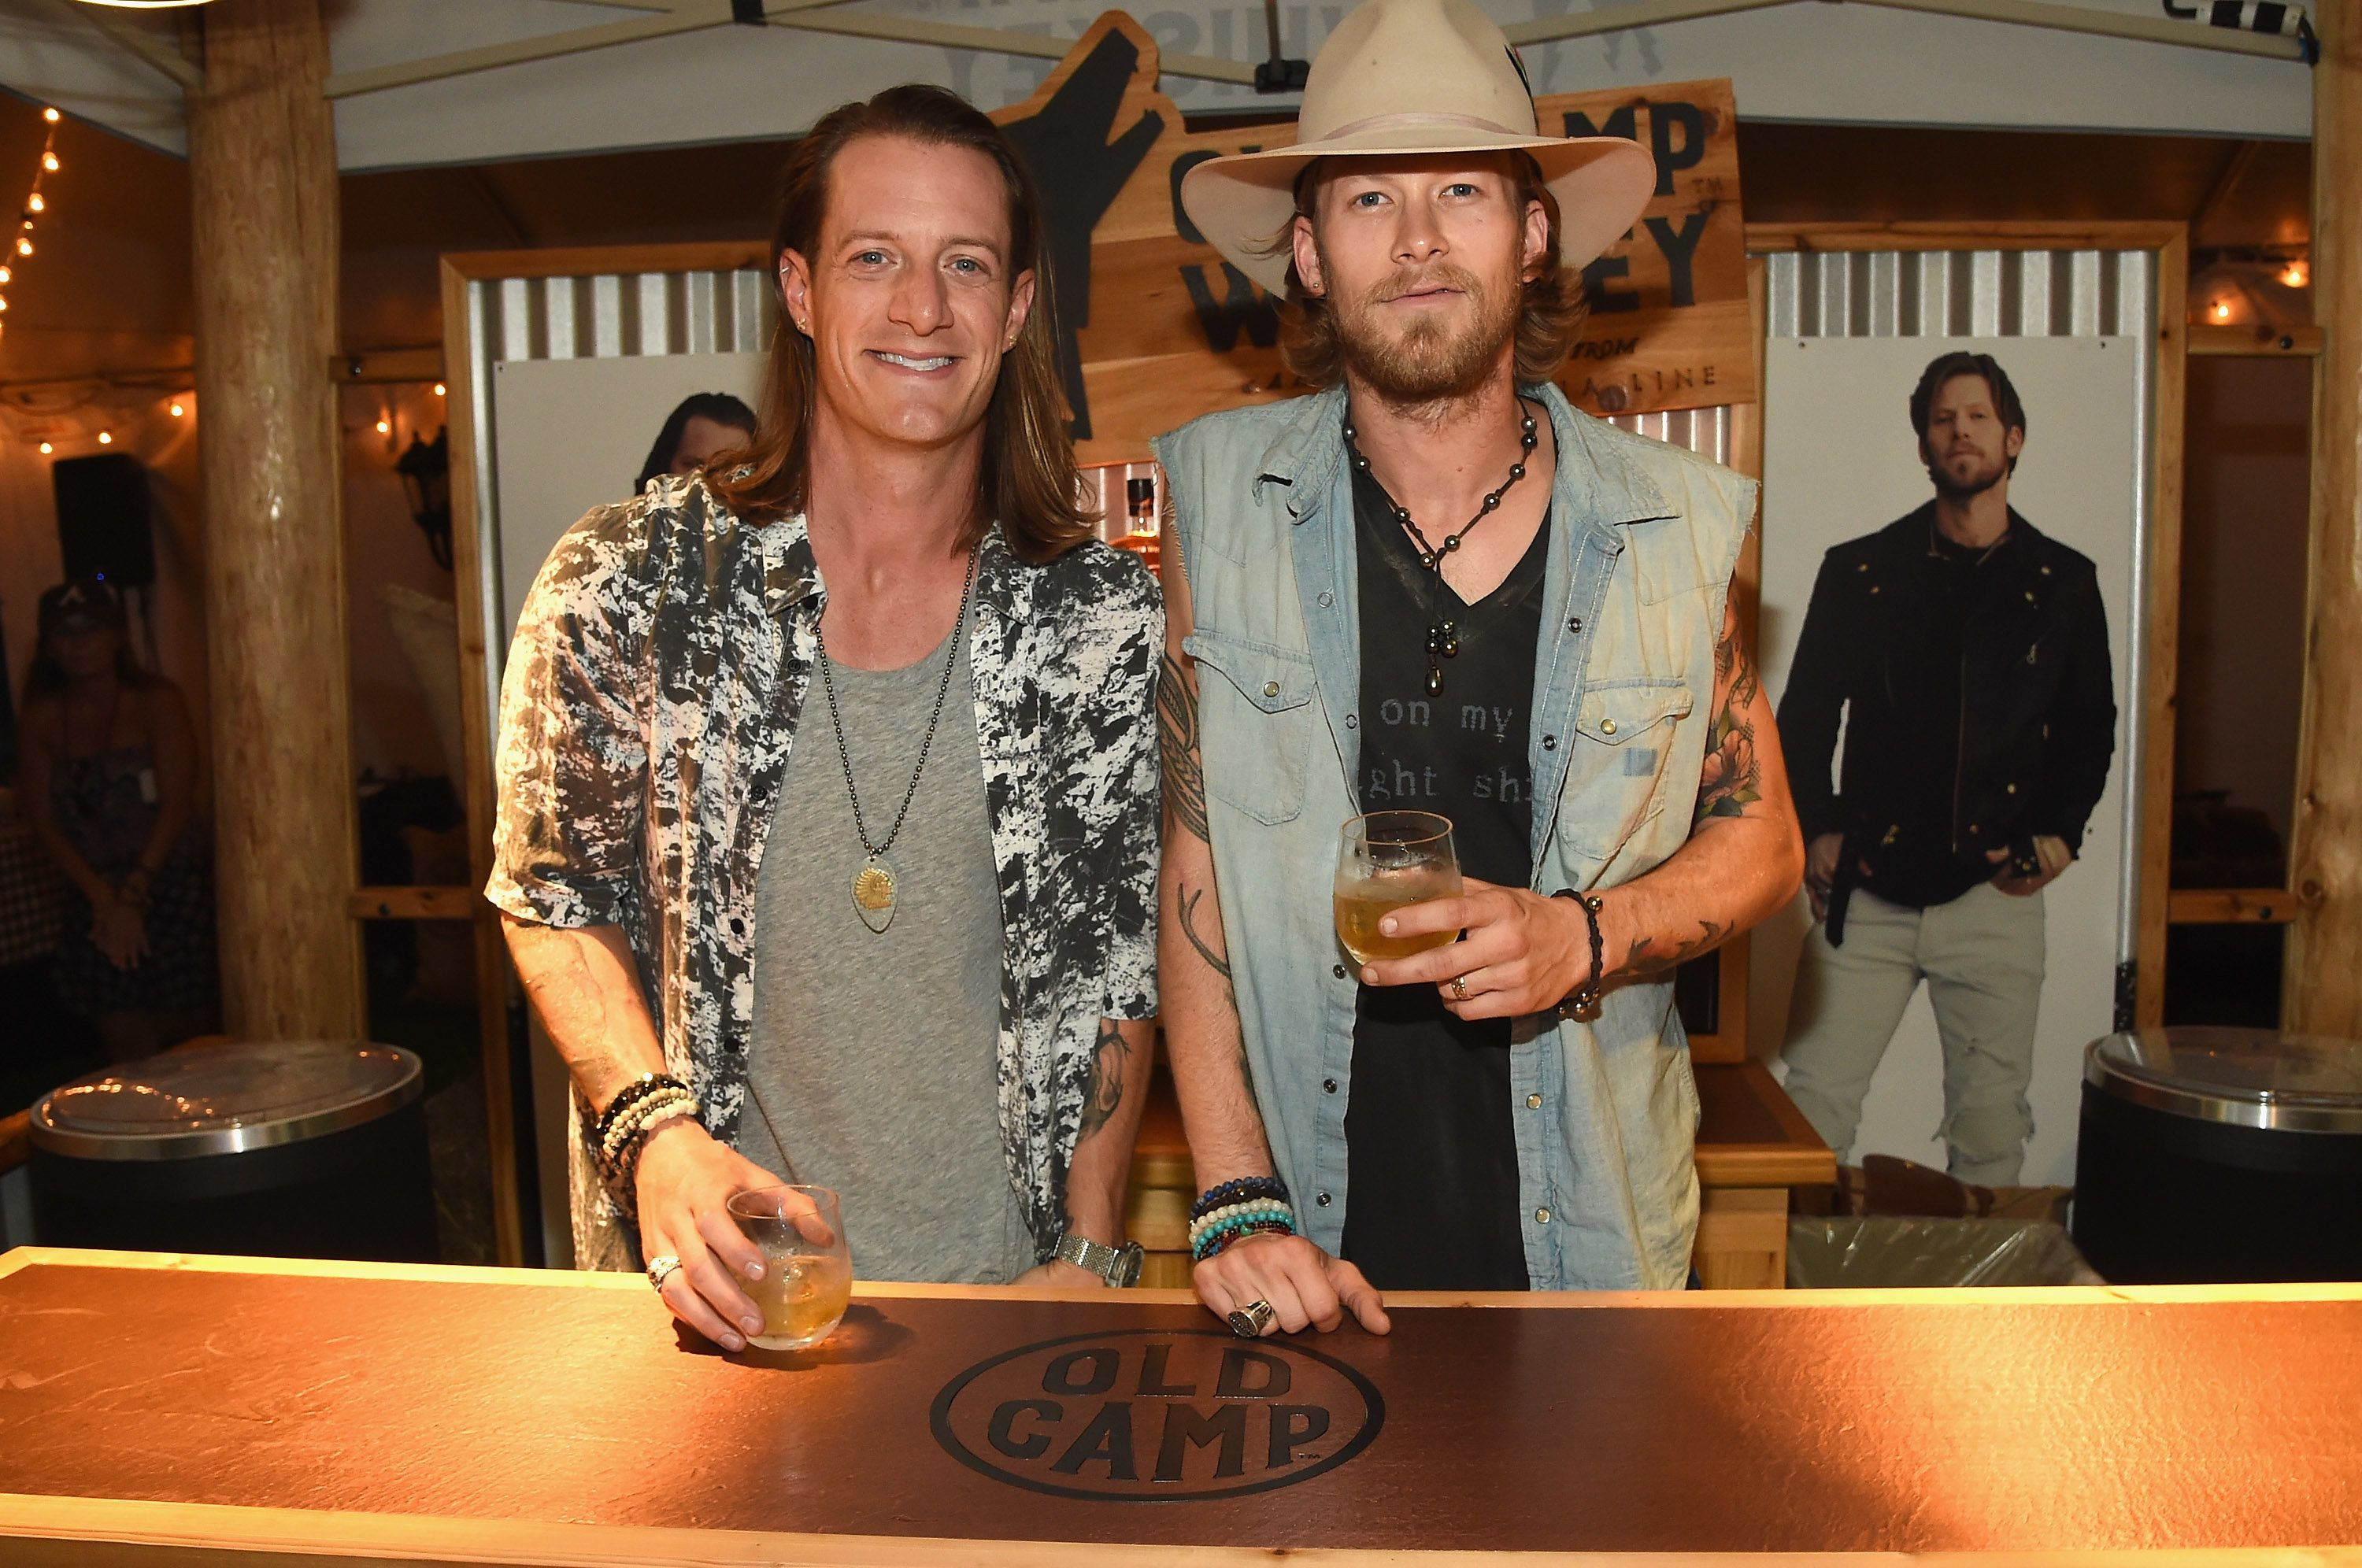 HOLMDEL, NJ - AUGUST 04:  Tyler Hubbard and Brian Kelley of Florida Georgia Line launch their Old Camp Peach Pecan Whiskey on August 4, 2016 in Holmdel City.  (Photo by Rick Diamond/Getty Images for Old Camp Peach Pecan Whiskey )